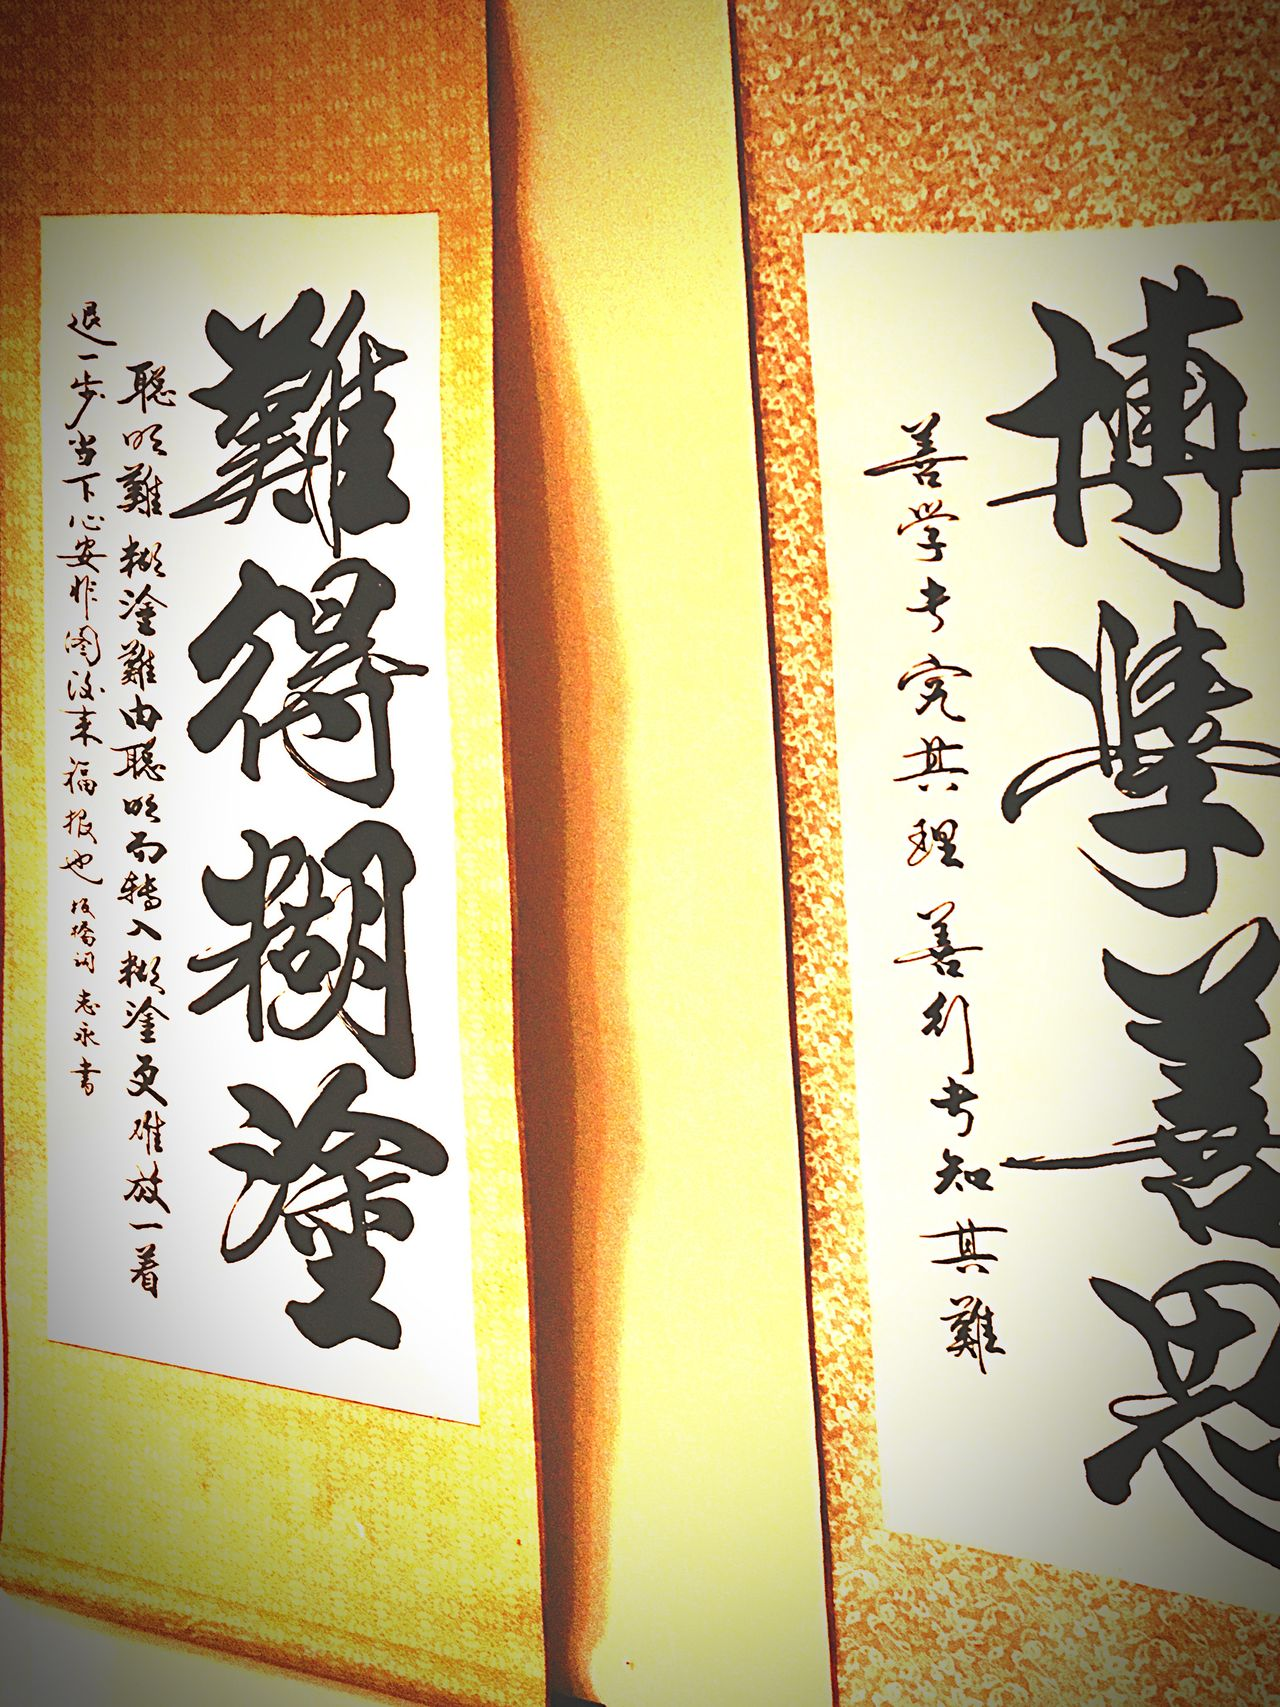 Text Calligraphy Chinese Art Wall Scrolls Sayings Communication Indoors